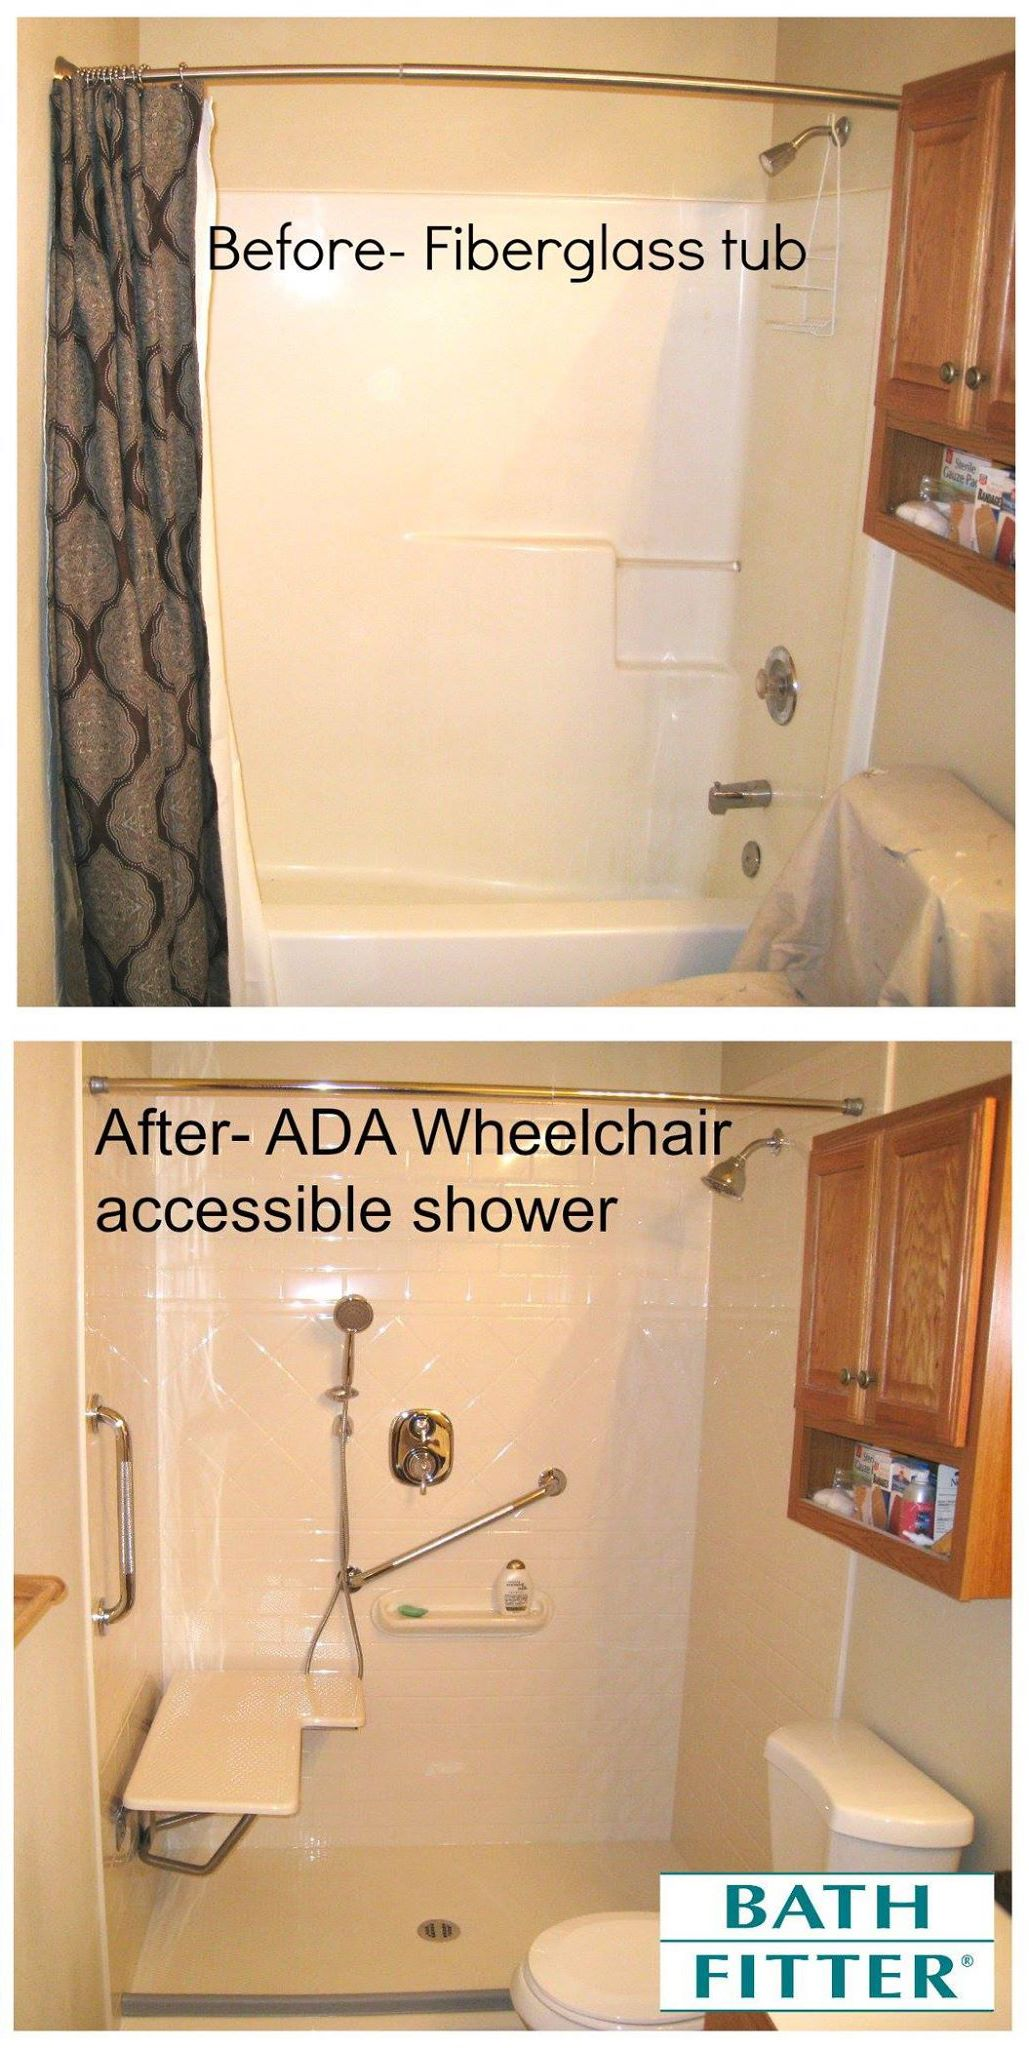 Handicap Accessible Bathroom Equipment for ada grab bar and accessories at close out prices, visit my